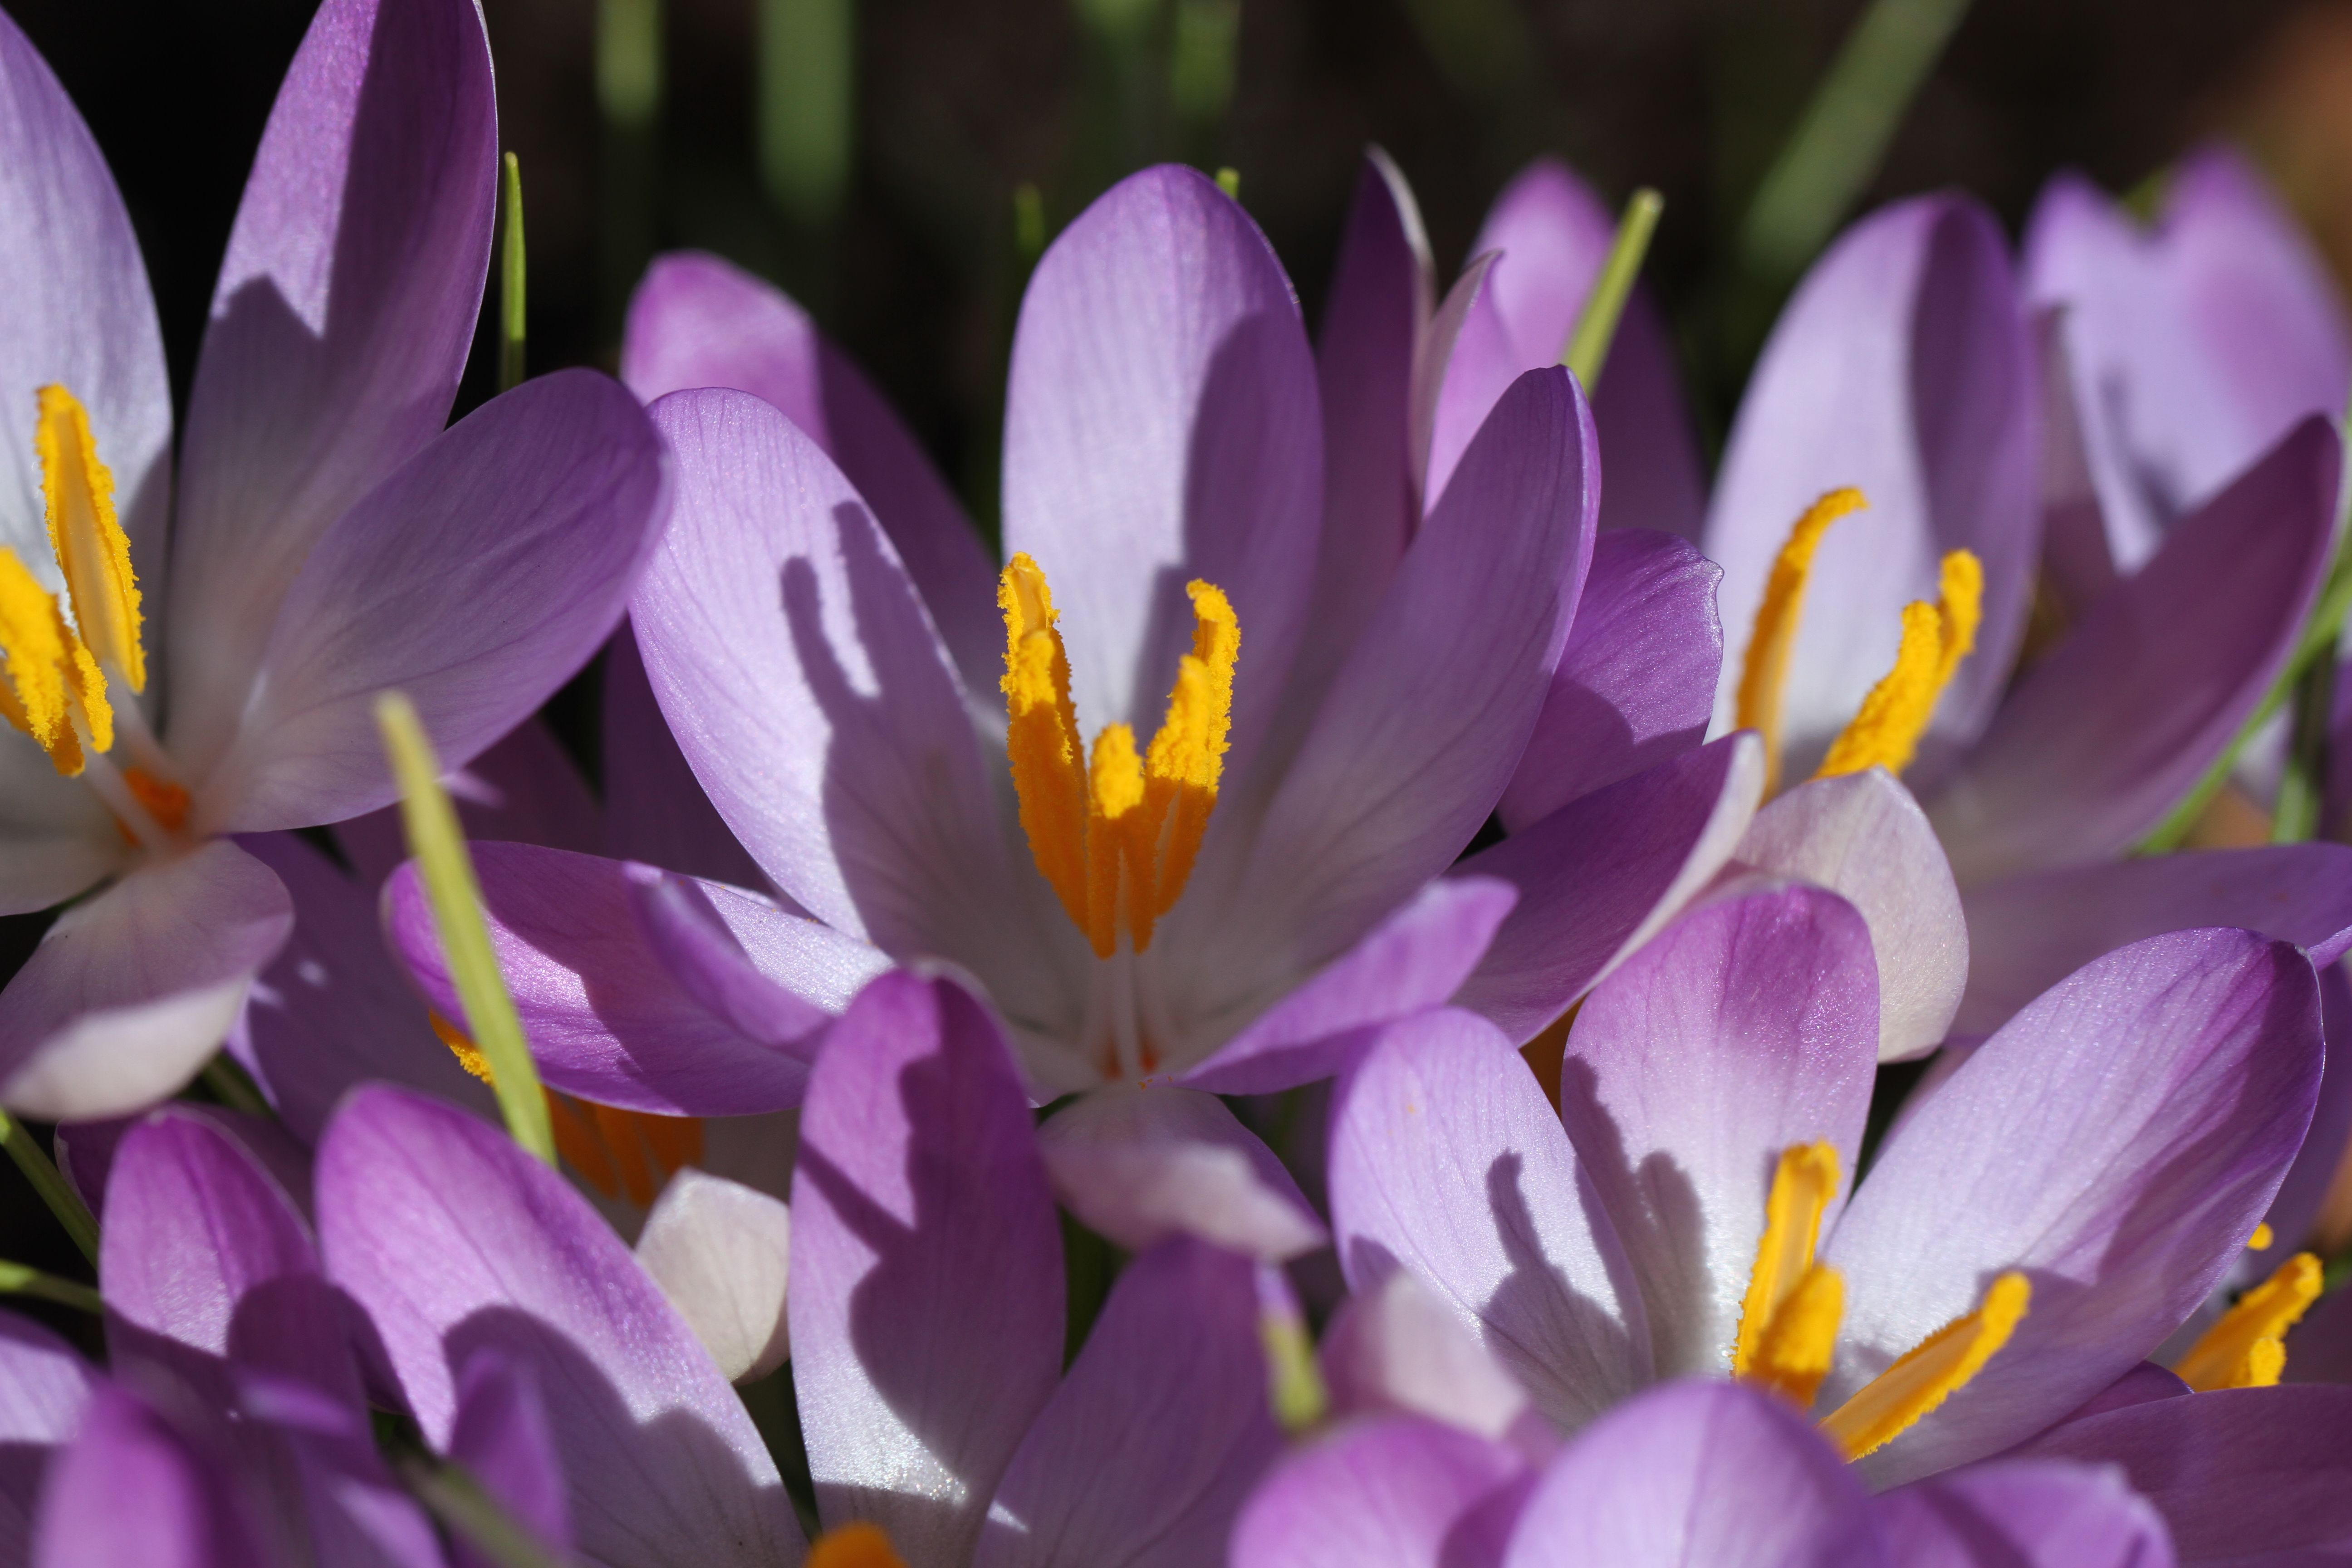 Can't wait till the crocuses bloom!